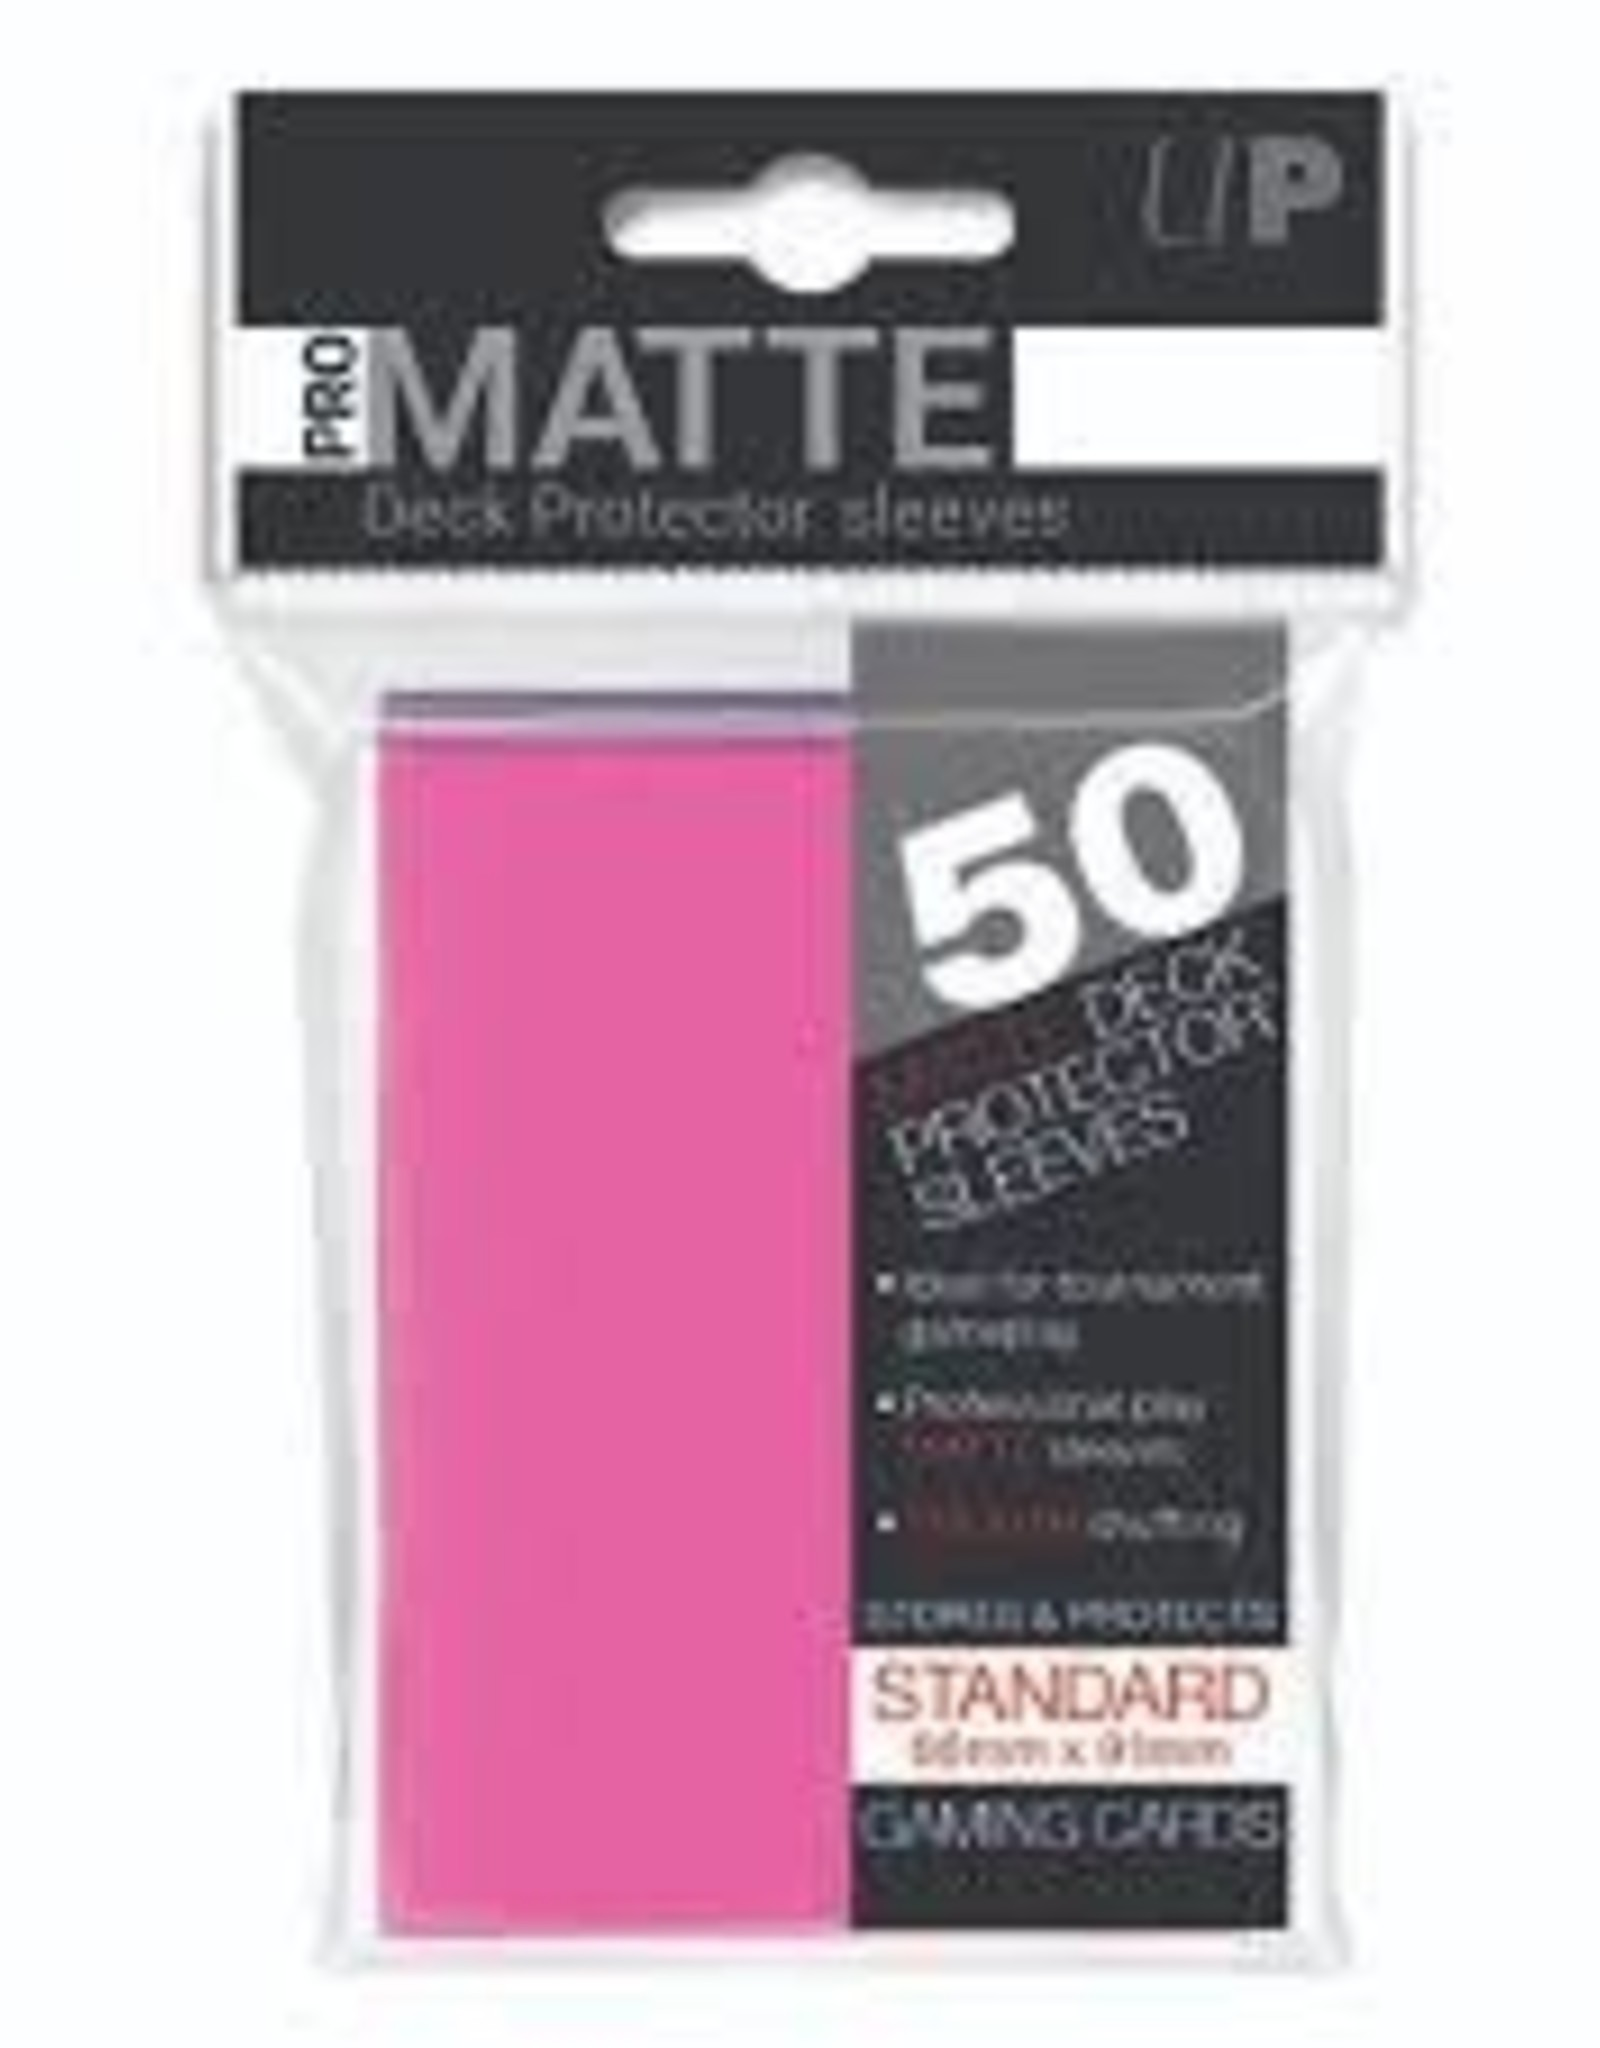 Pro Matte Deck Protector Sleeves 50ct Bright Pink